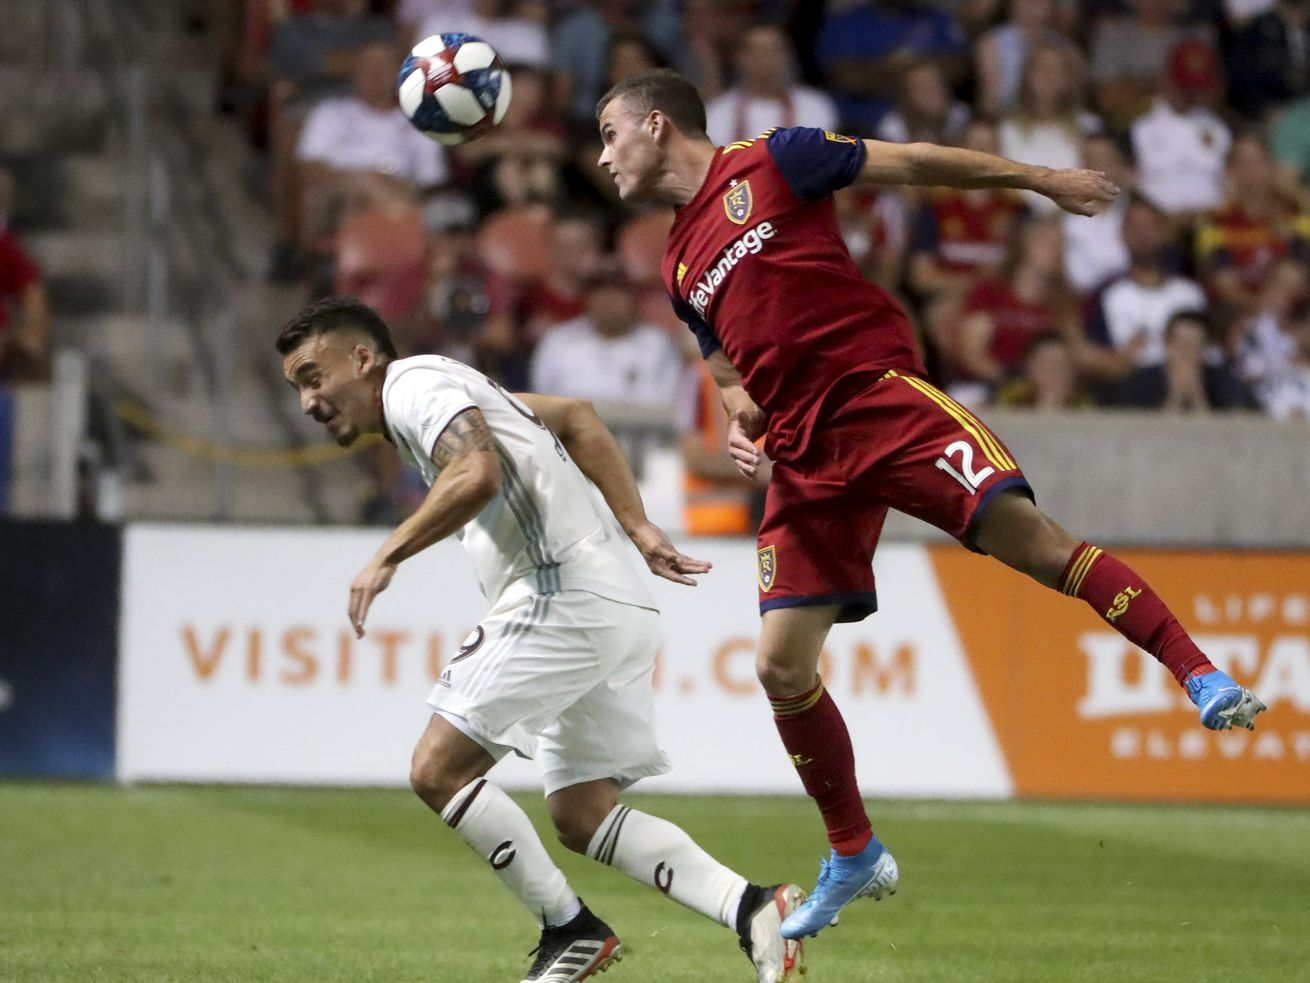 Real Salt Lake's attacking options extremely limited for Wednesday's clash with San Jose